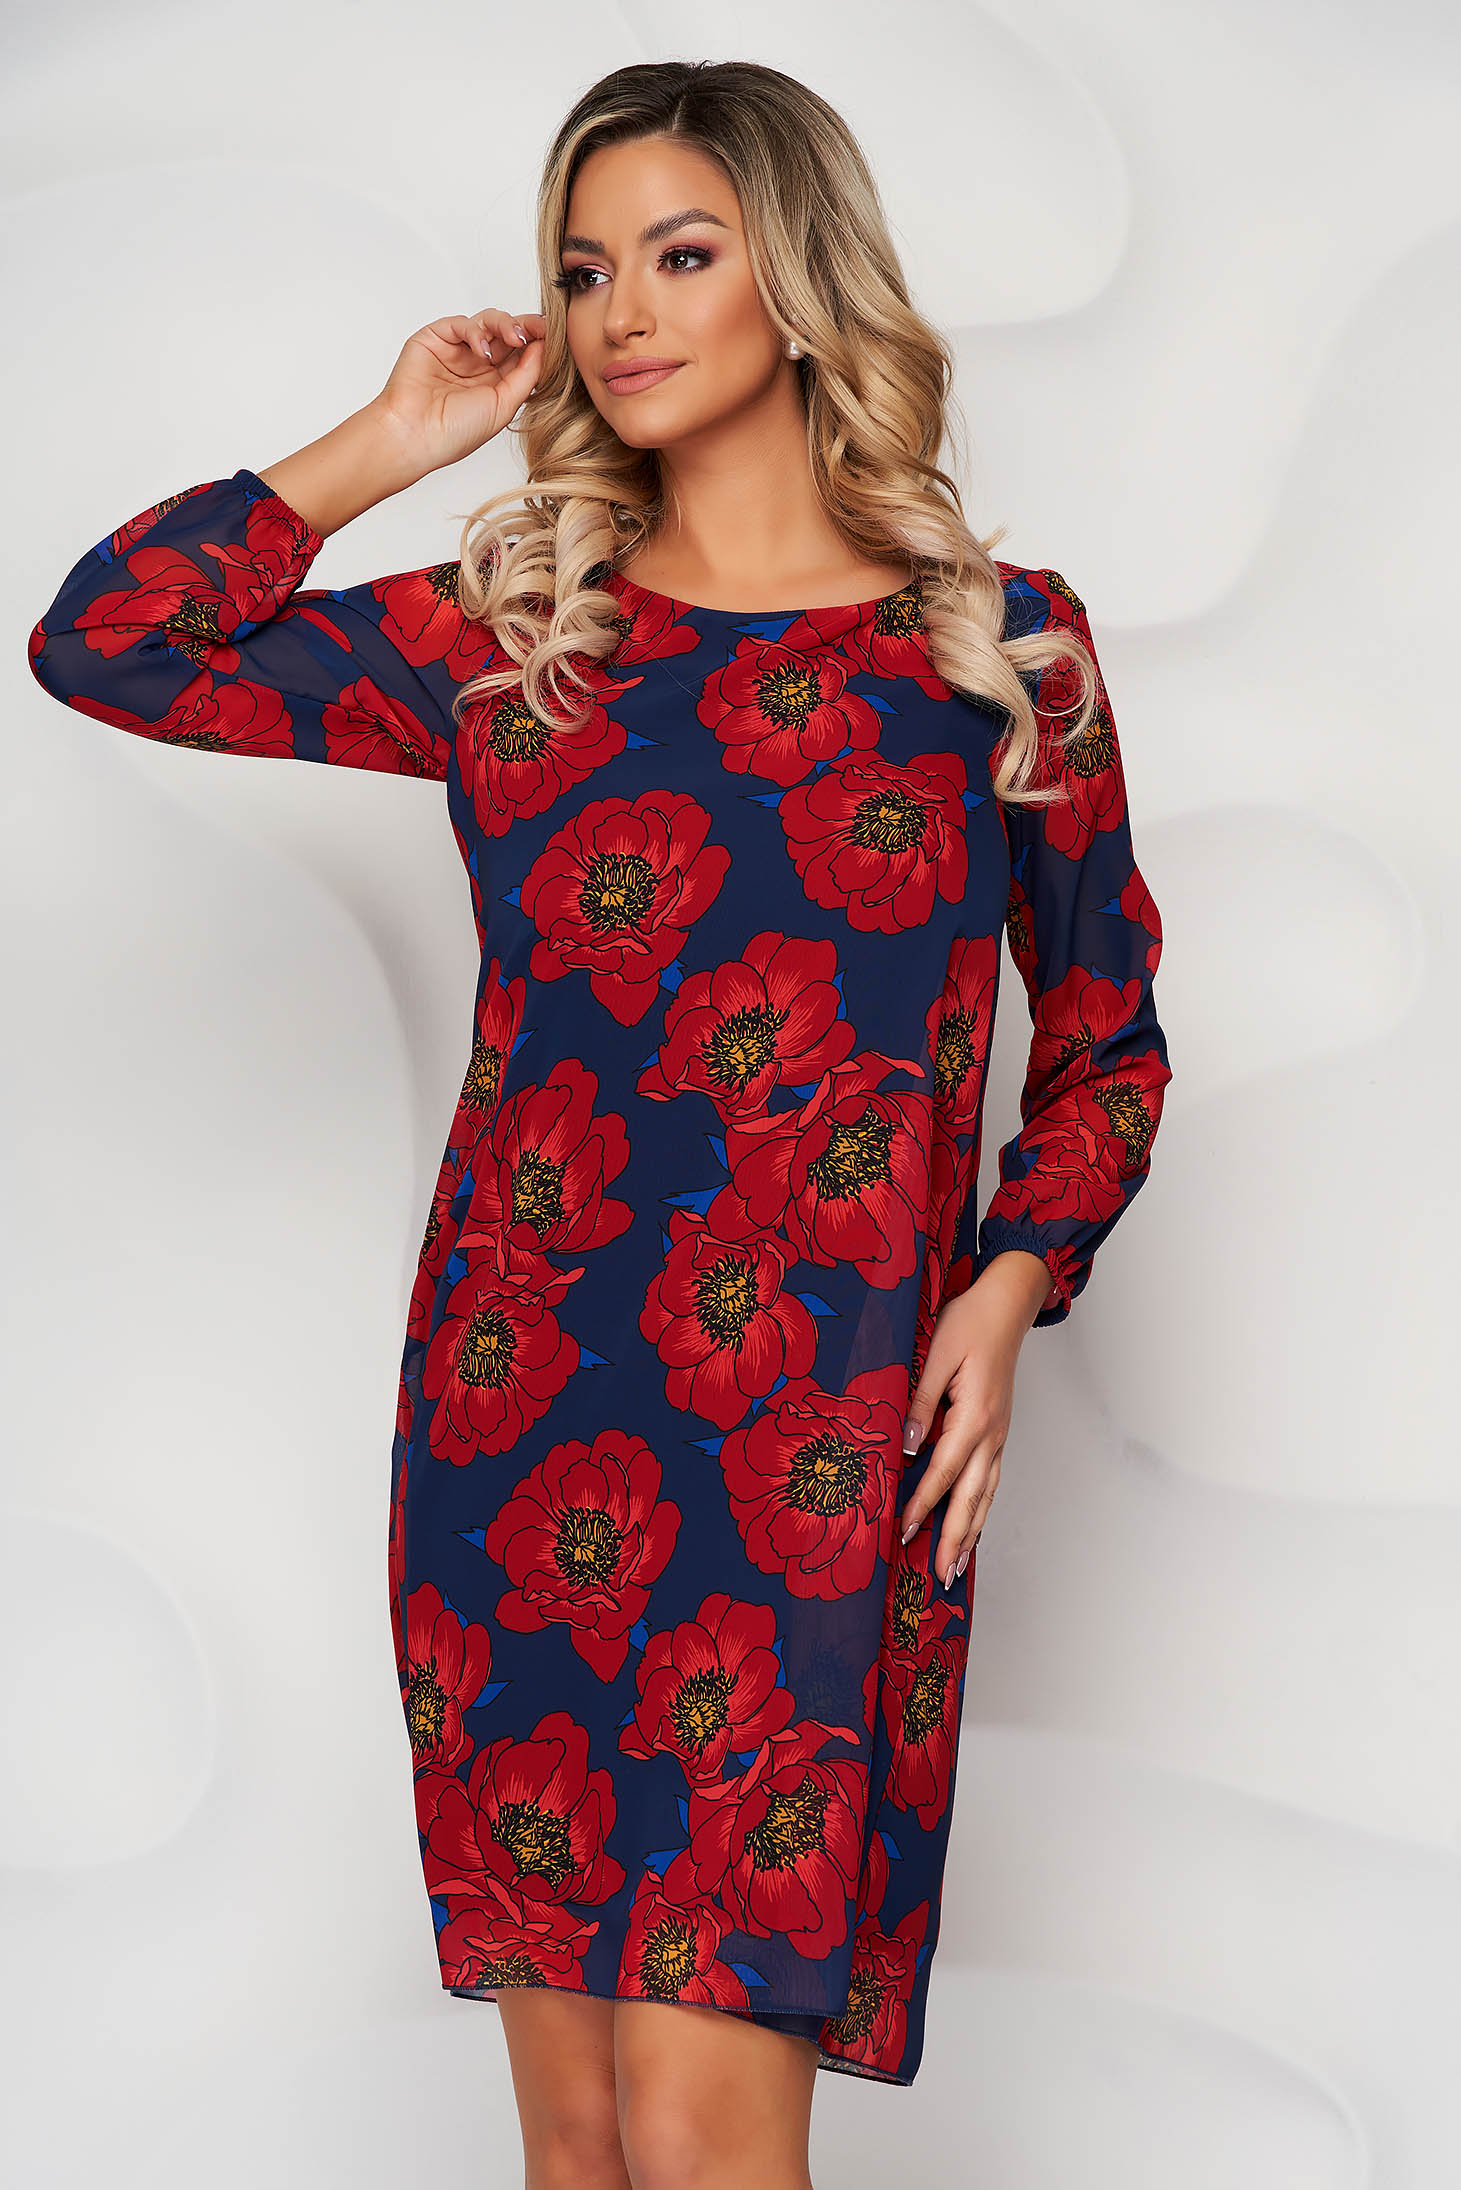 Red dress short cut elegant a-line with floral print with 3/4 sleeves neckline